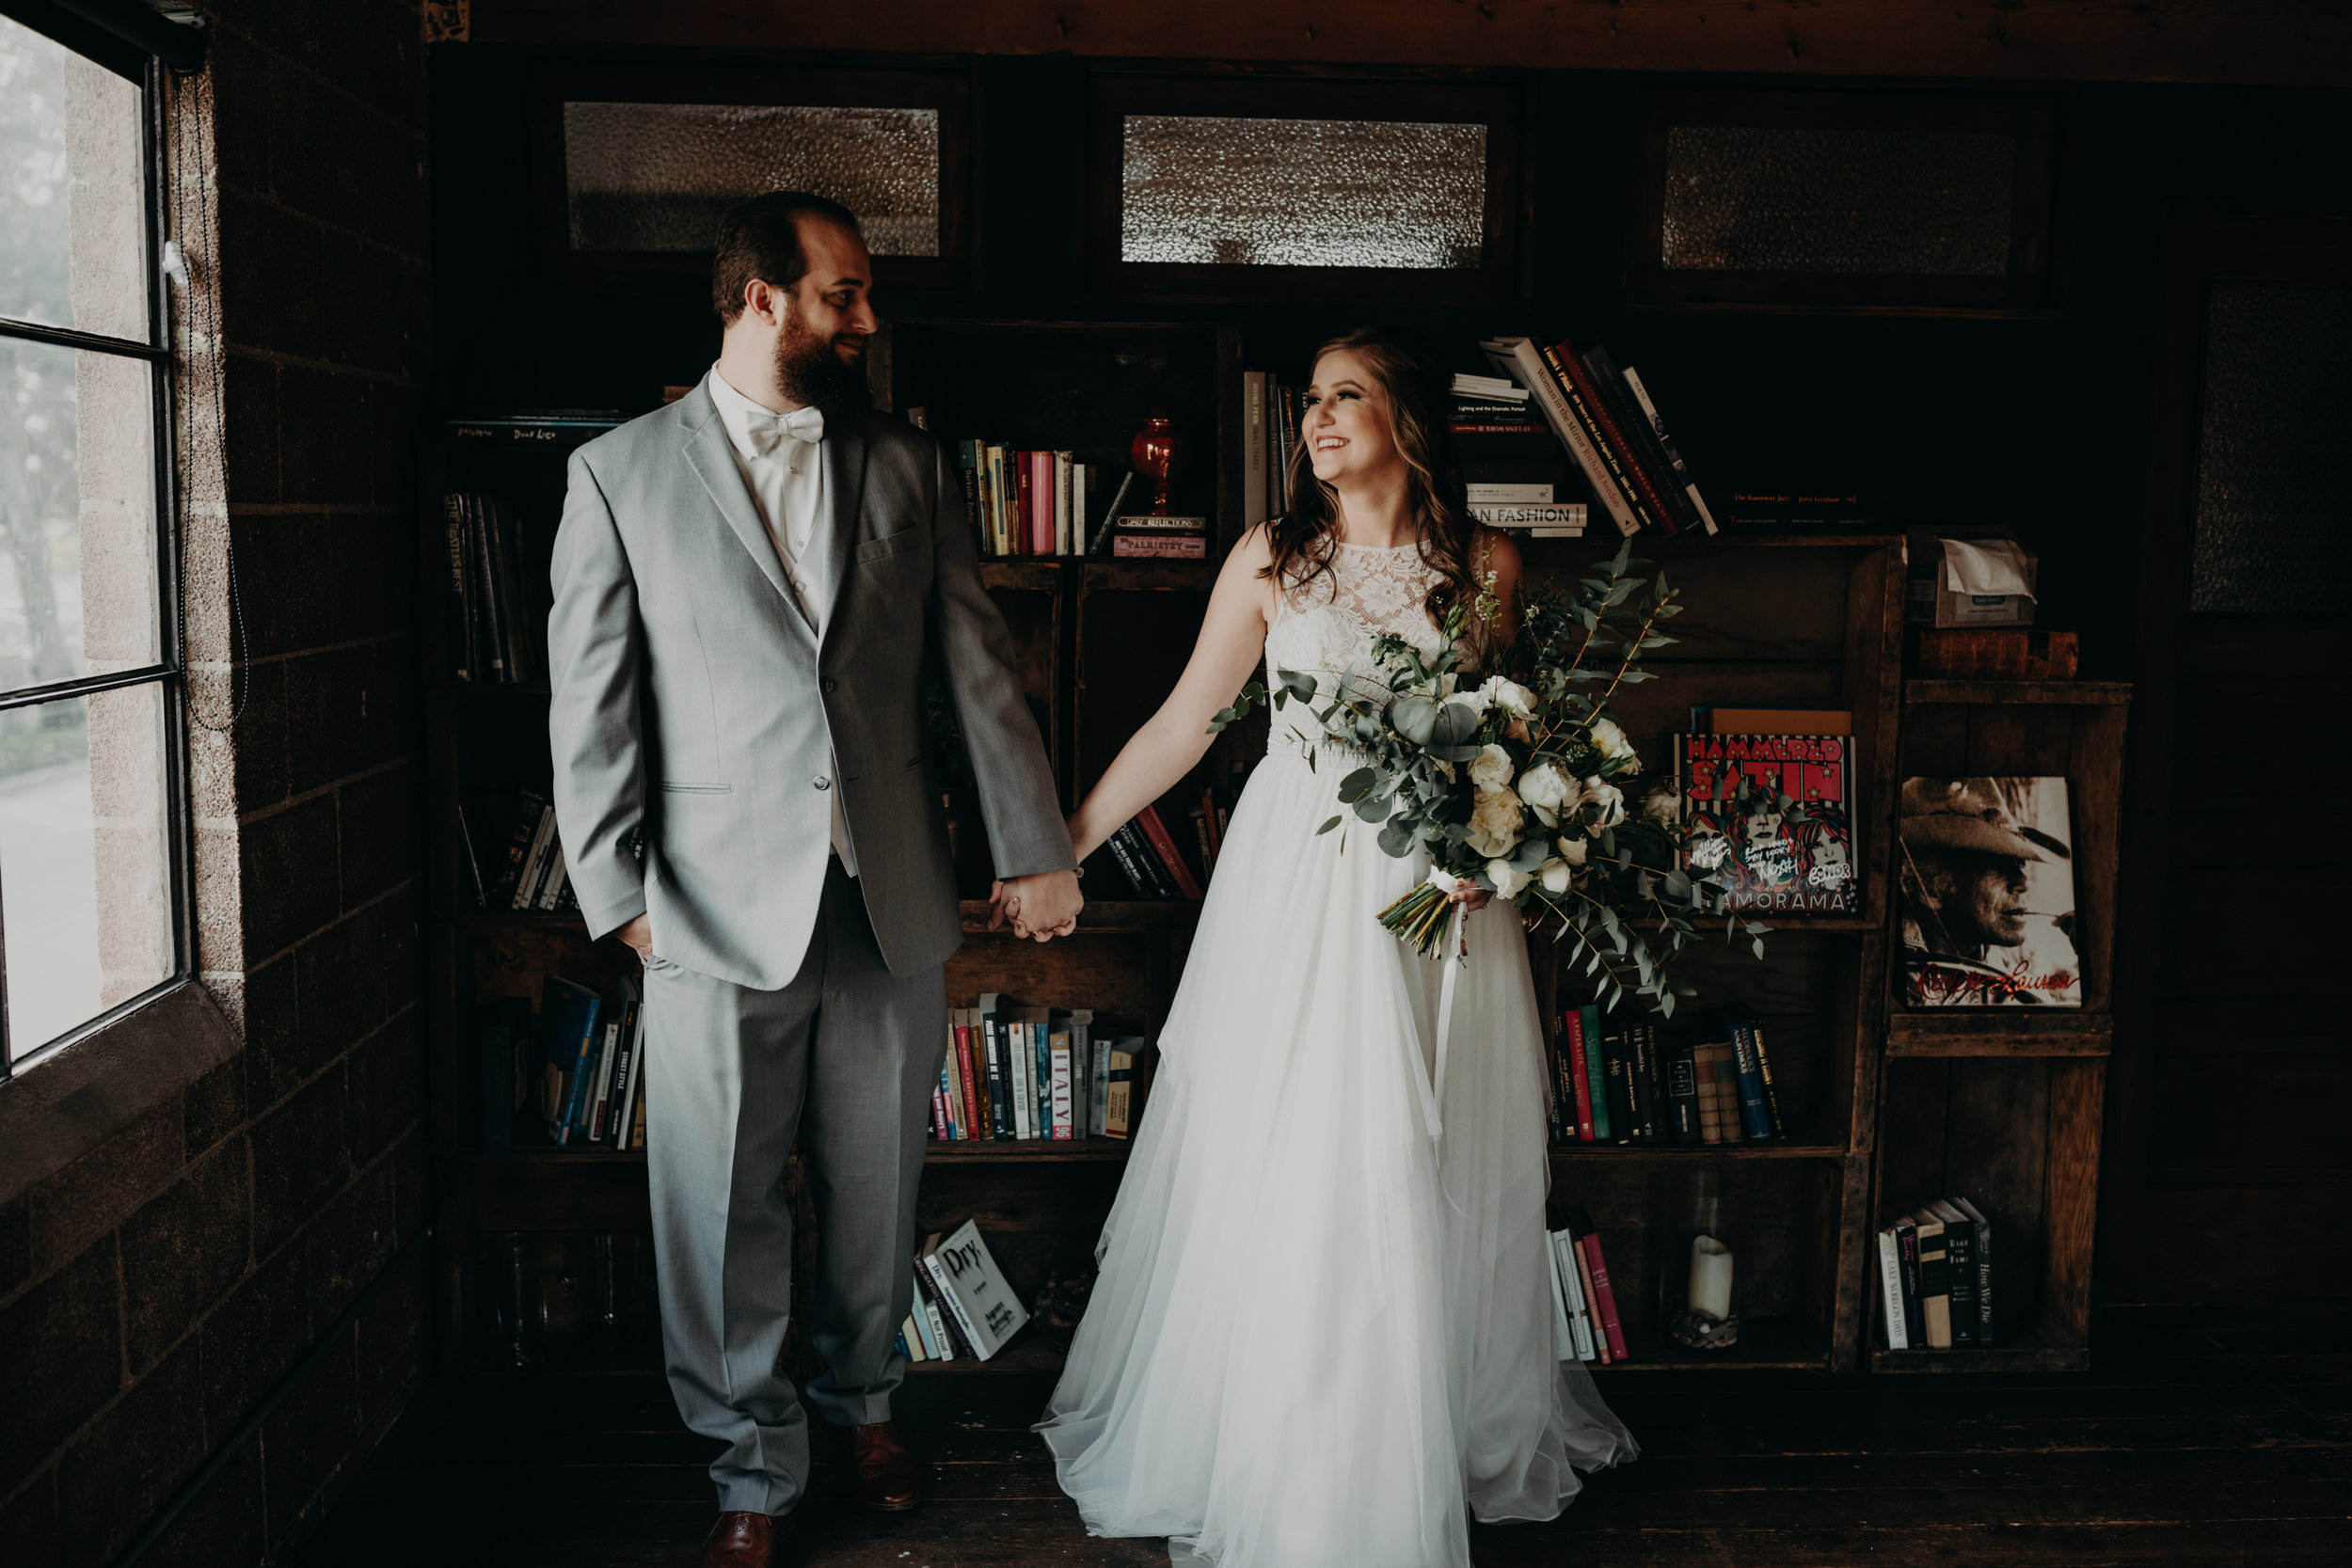 Smoky Hollow Studios Wedding Anne & Lewis Emily Magers Photography-429.jpg